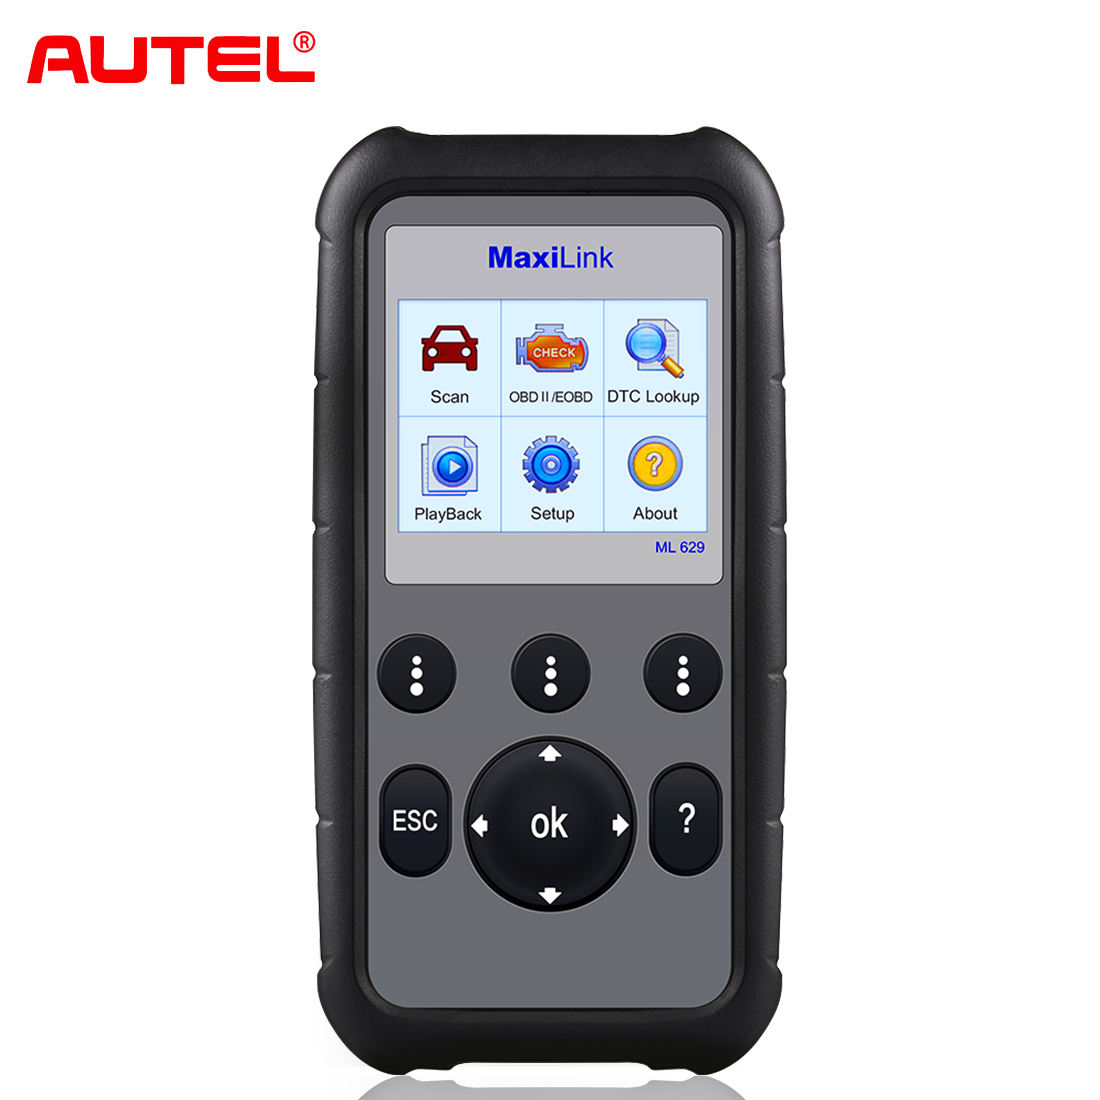 Autel MaxiLink ML629 OBD2 Scanner Code Reader ABS/SRS Multi Languages Car Diagnostic Tool, Turns off Engine Light (MIL) ABS/SRS